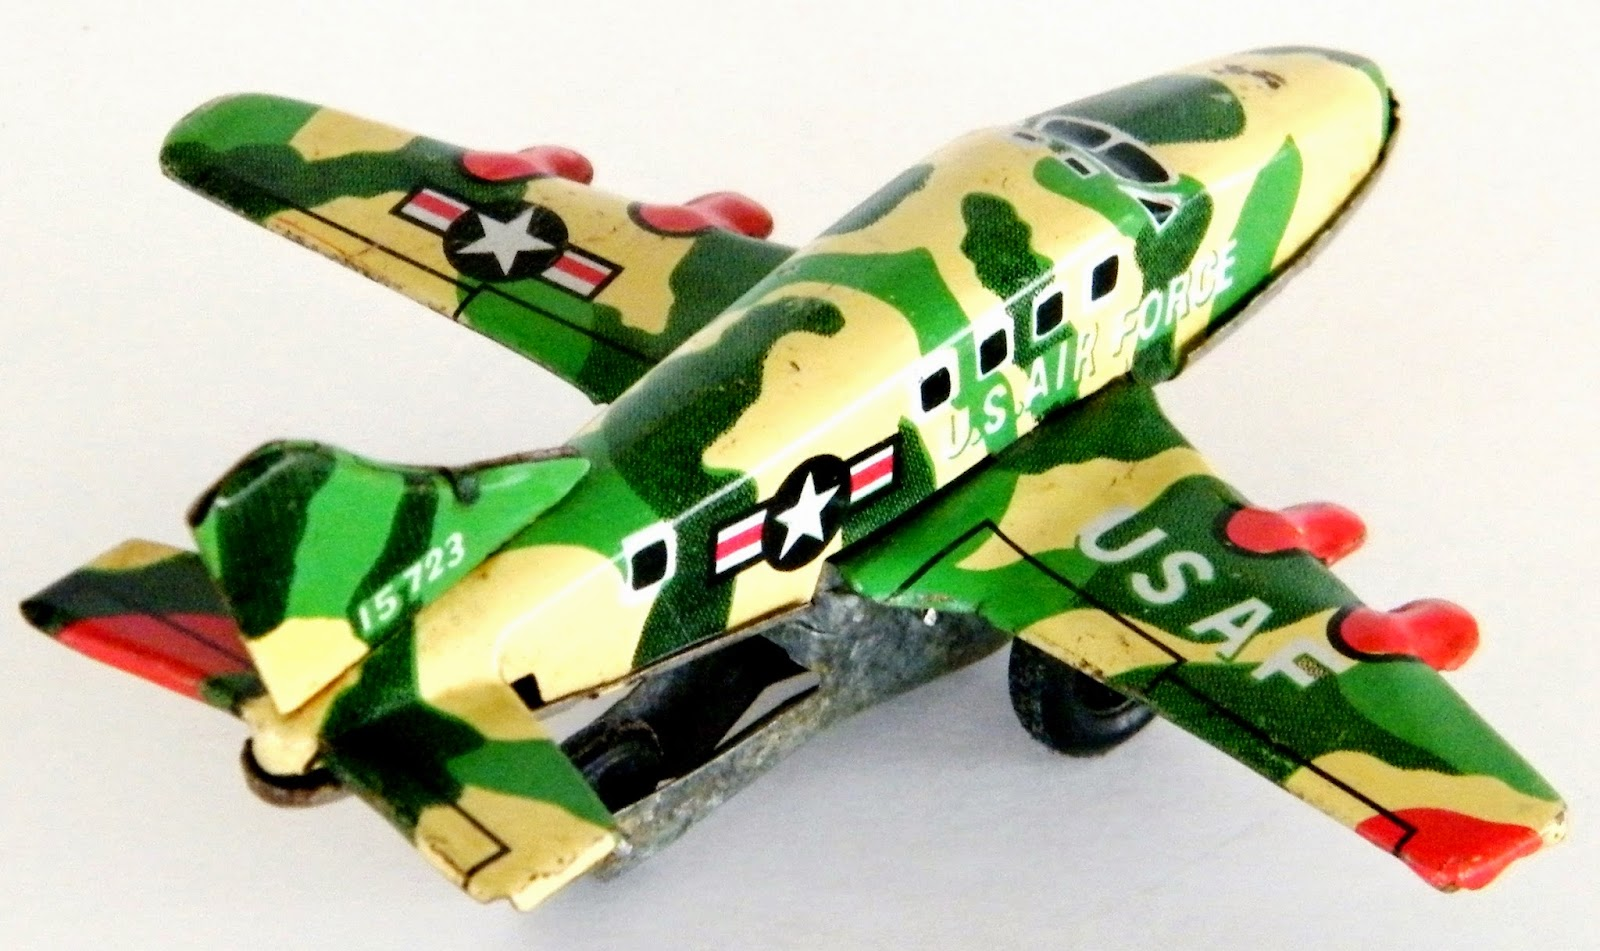 Japanese Toy Manufacturers : Toys and stuff japan unknown manufacturer usaf mini